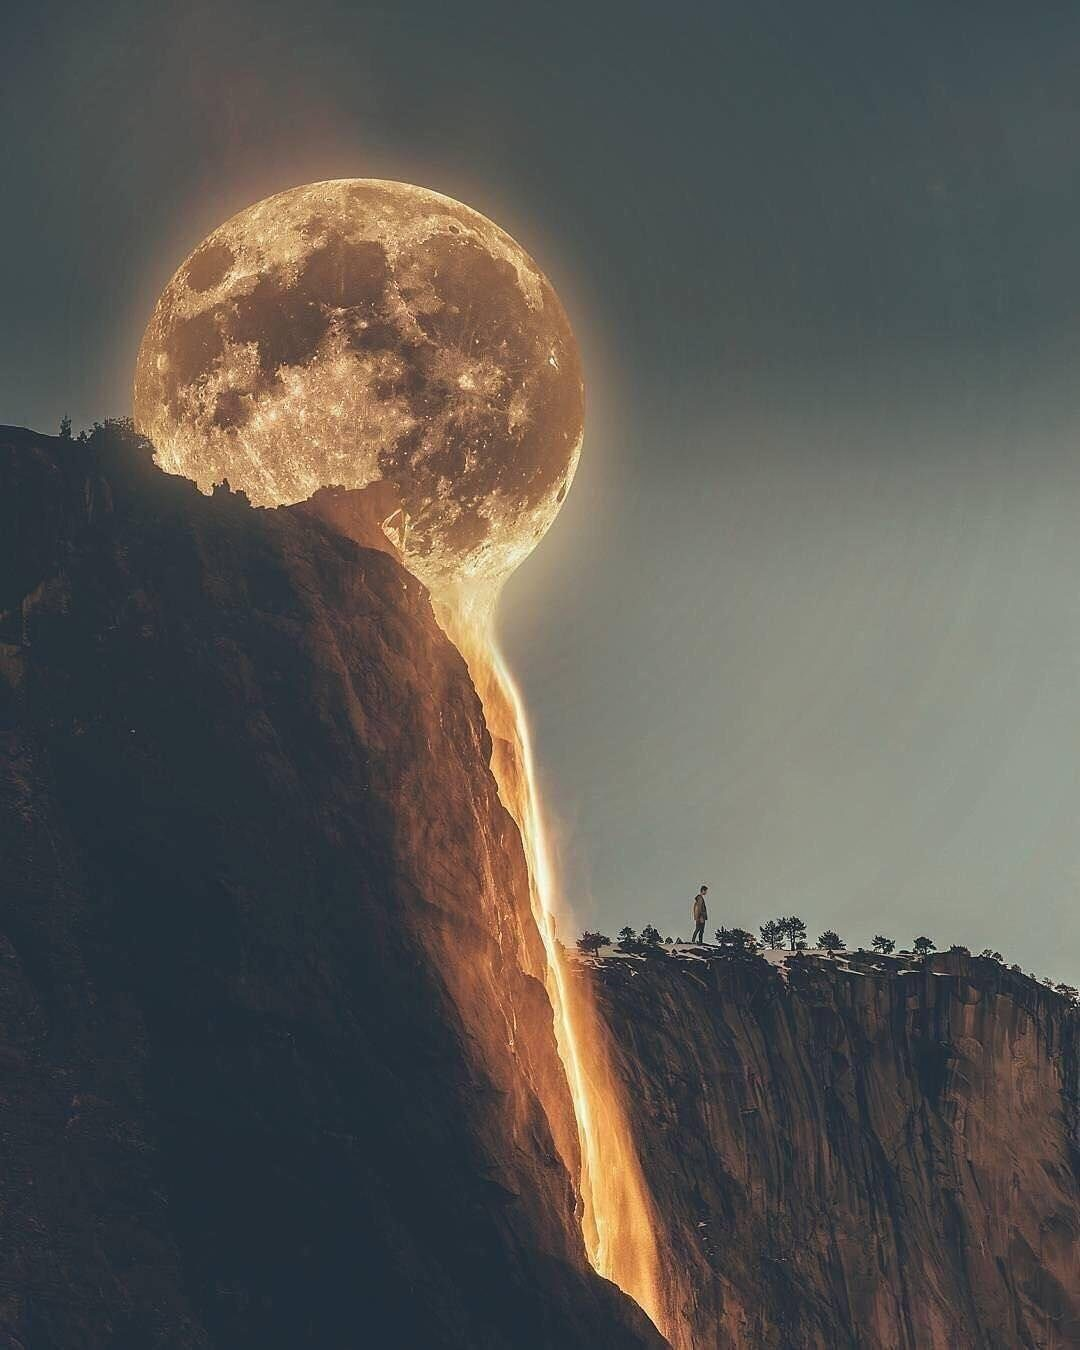 FACT CHECK: Is This A 'Lava Moon' Melting Into A Waterfall?